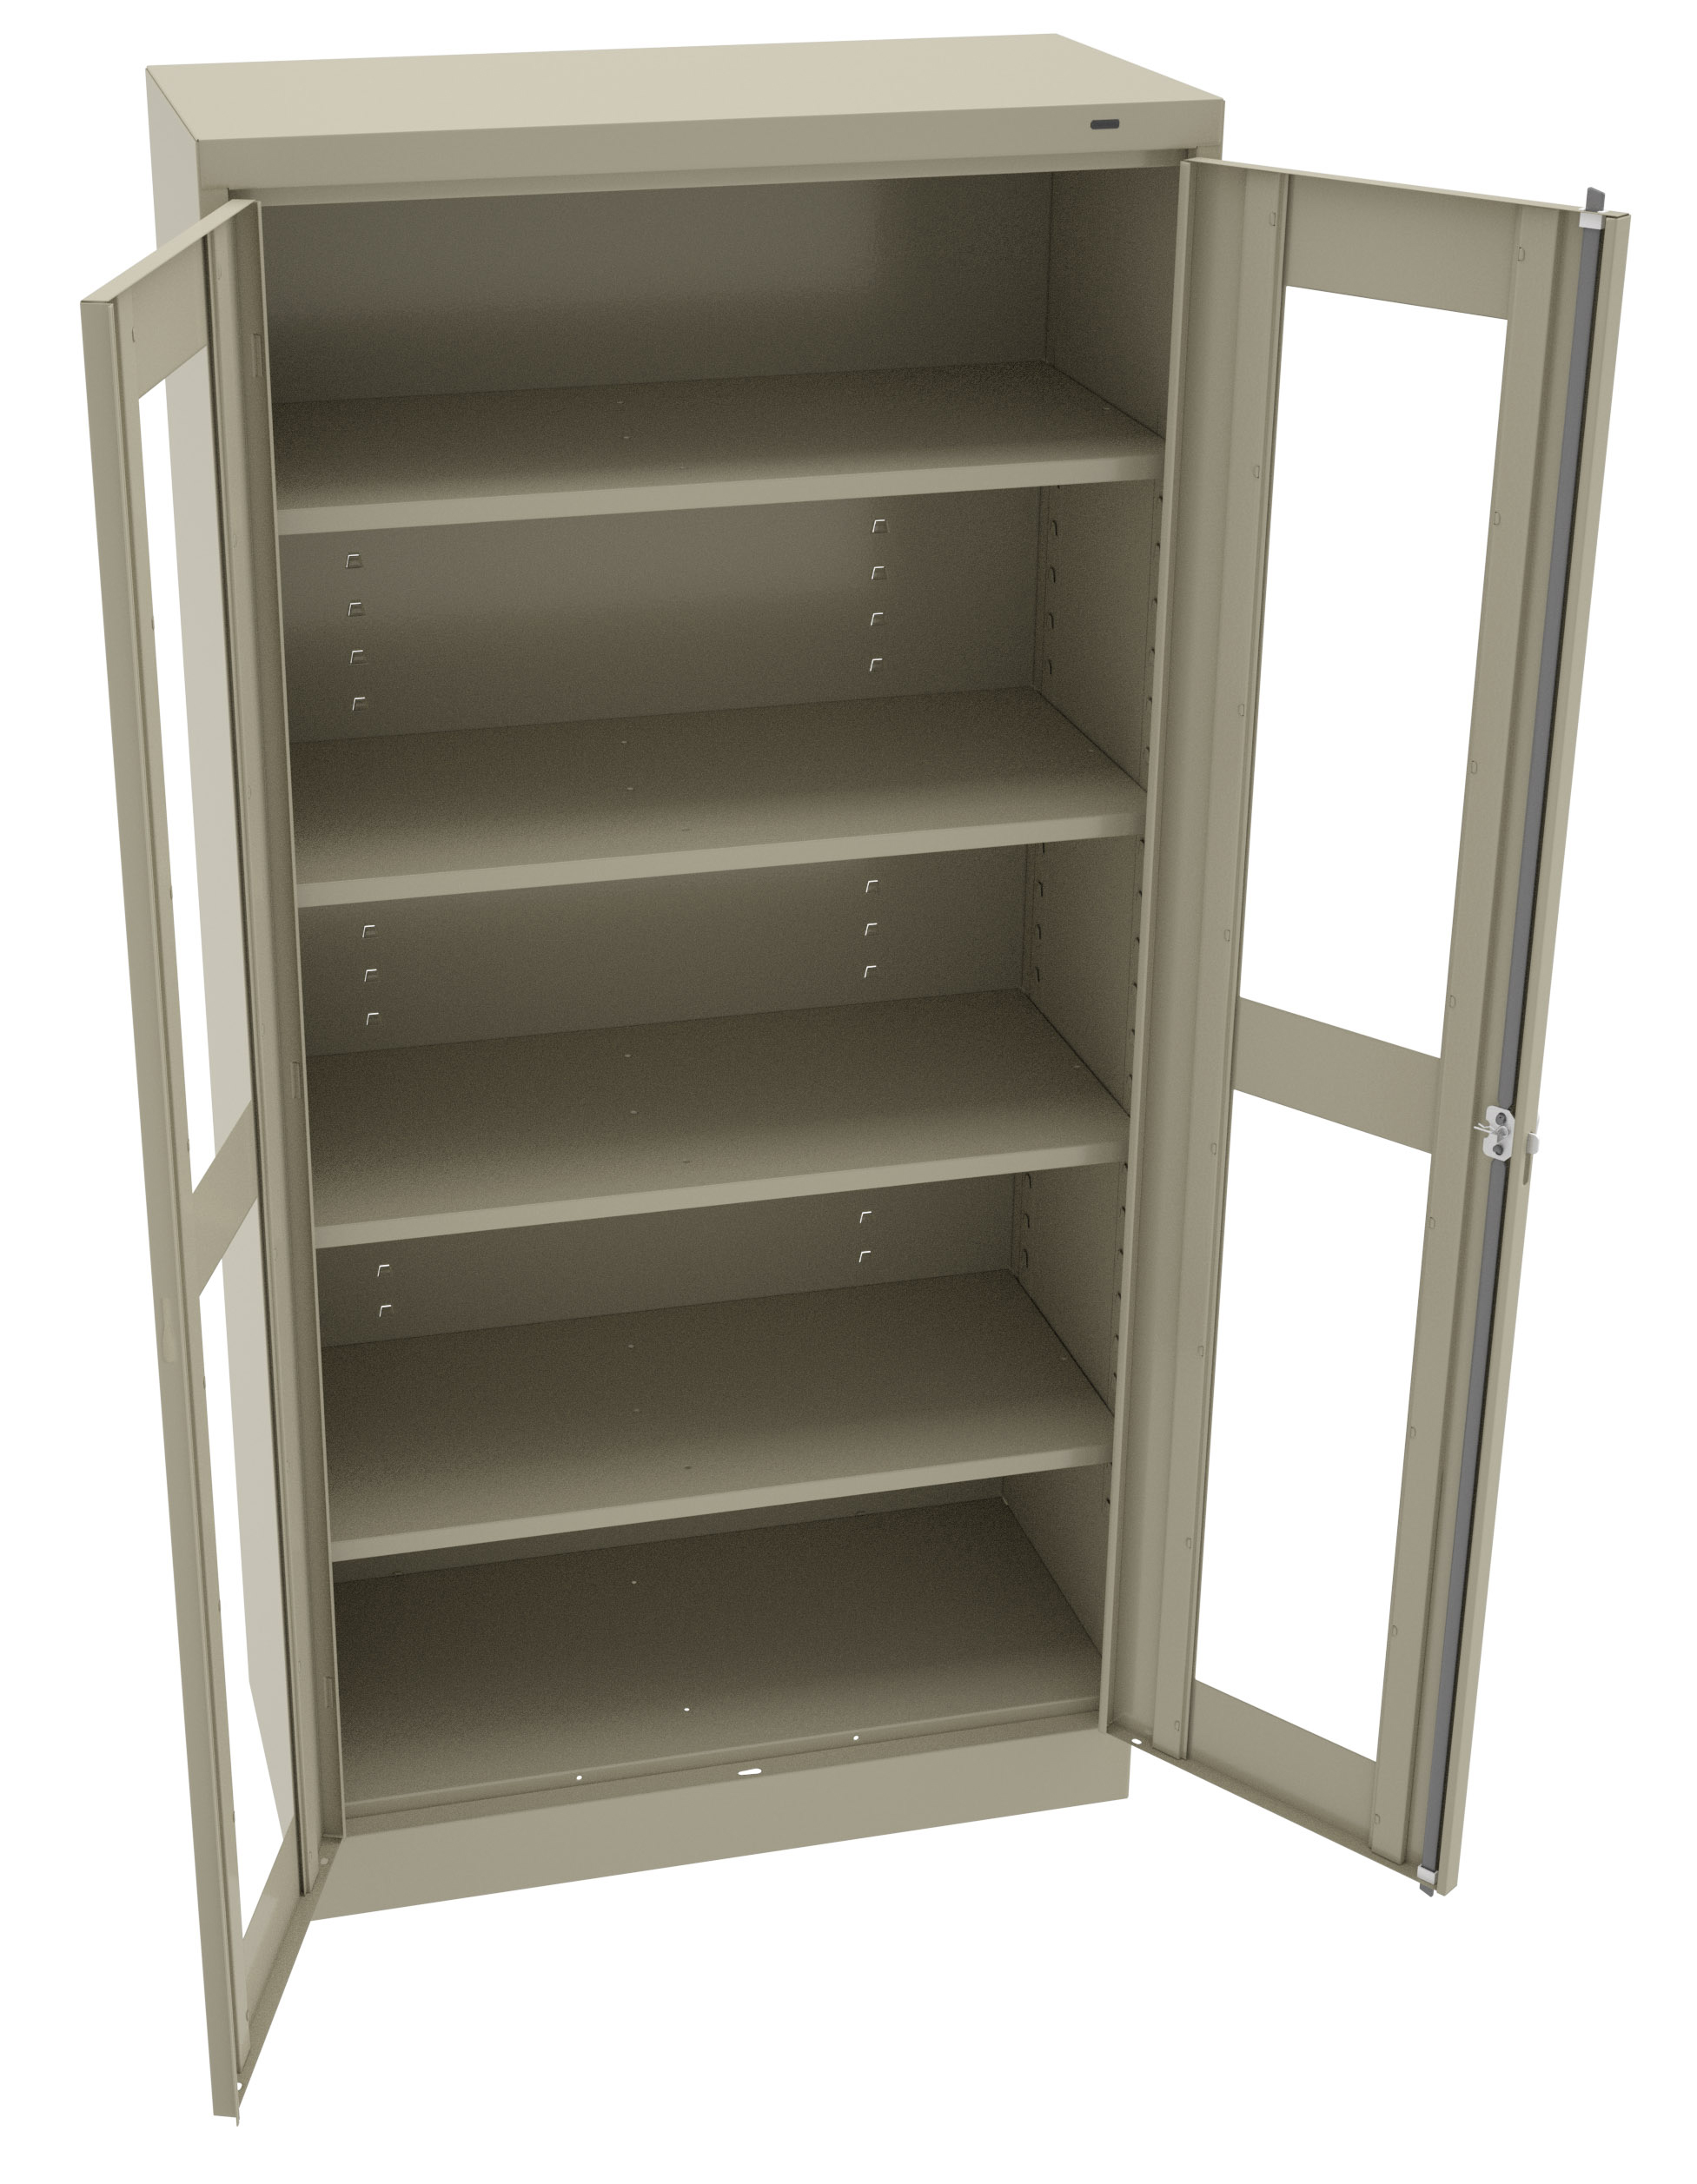 Tennsco - Storage Made Easy - Standard Storage Cabinet with C-Thru ...